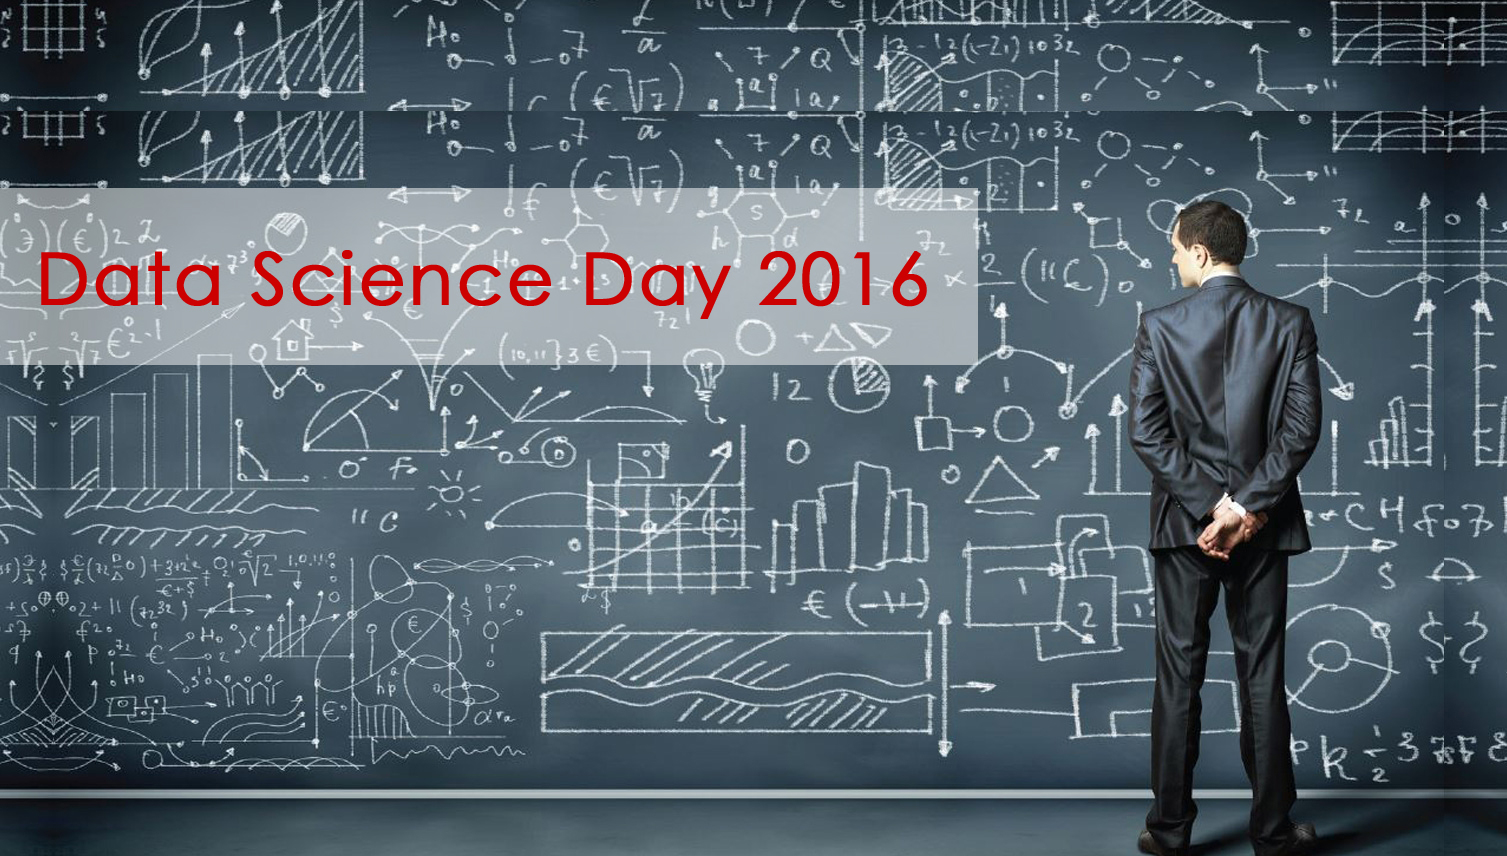 Data Science Day 2016